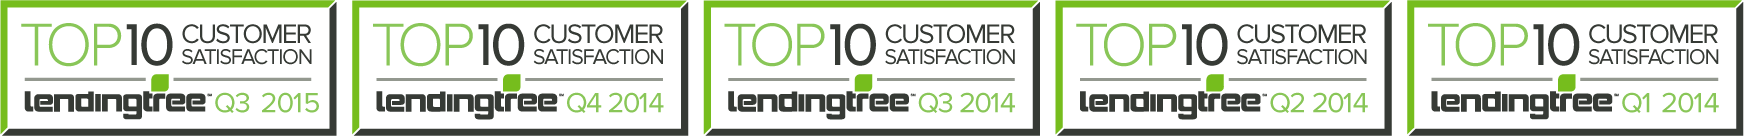 LendingTree Top Ten awards for Silver Fin Capital.